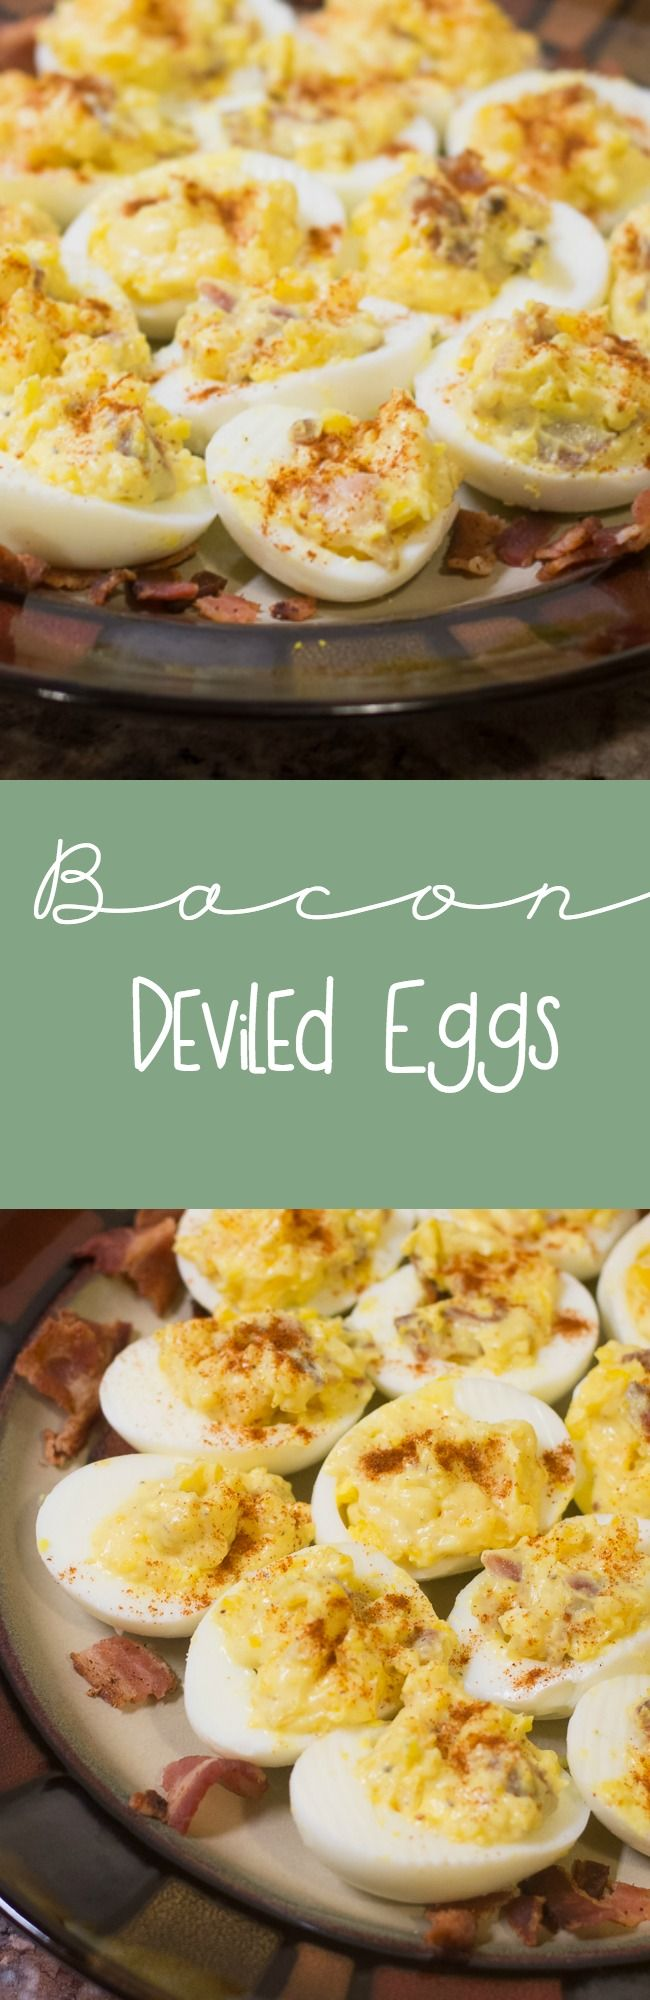 Do you enjoy bacon and eggs? Then you'll love this simple bacon deviled eggs recipe! It has all the makings of a traditional deviled egg, but the bacon adds a much needed (and delicious) crunch!)